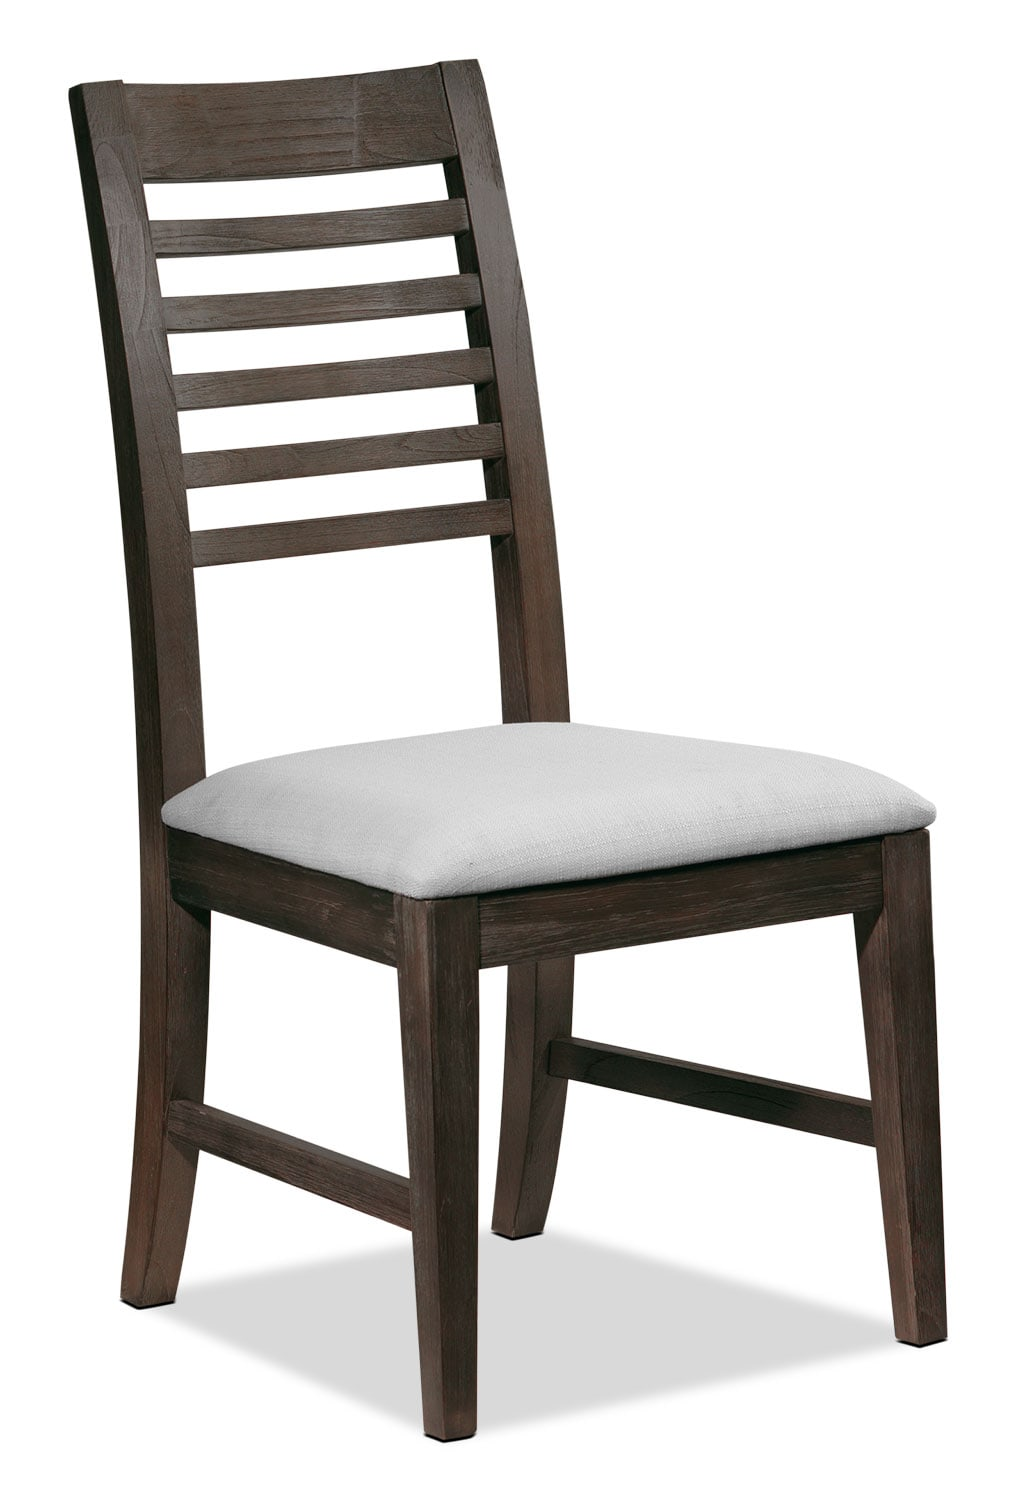 Bravo Chair - Platinum Oak